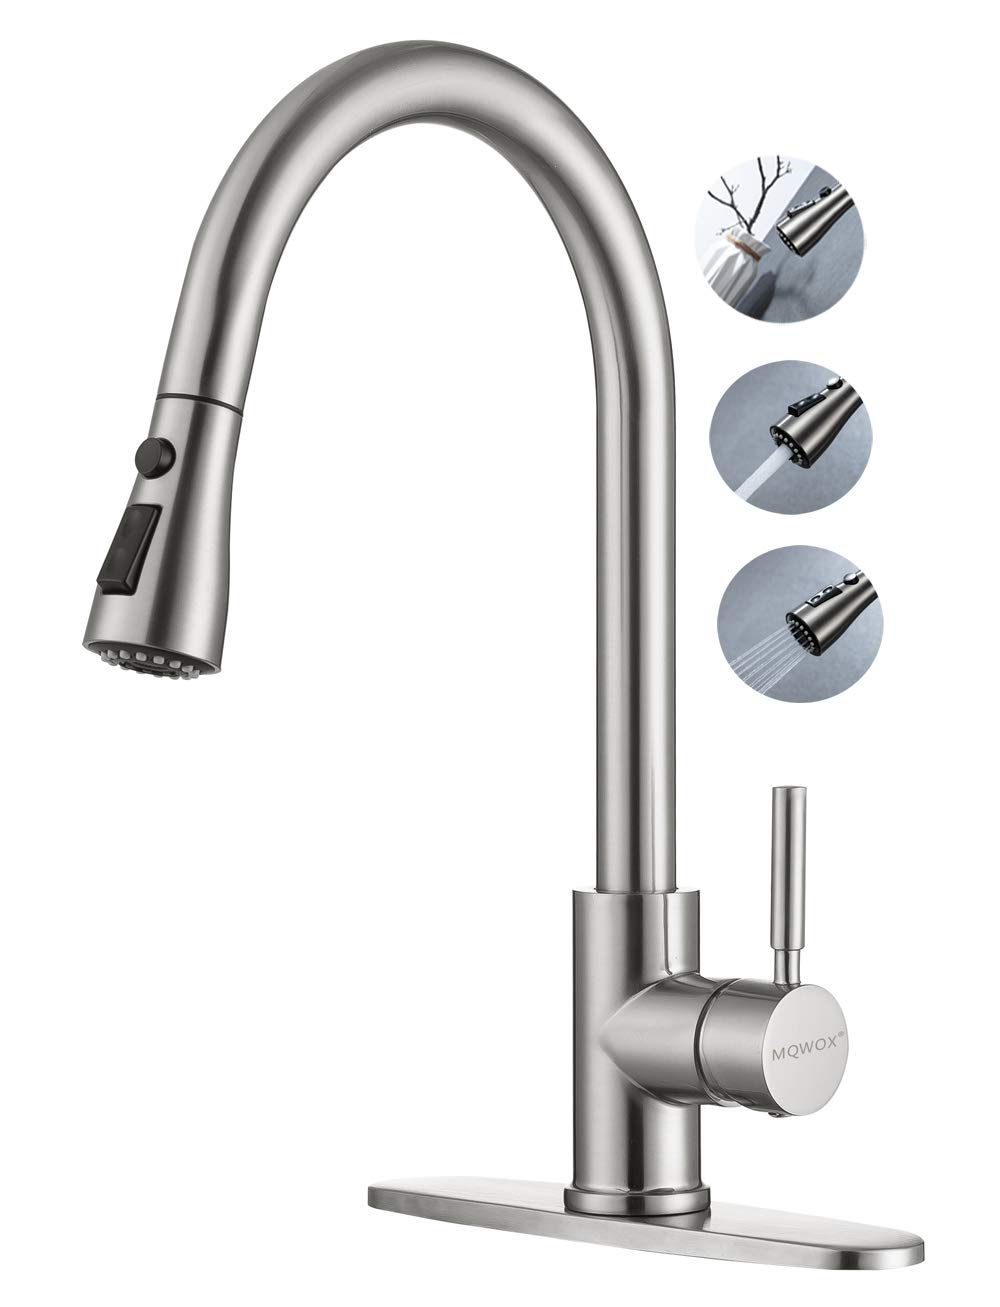 MQWOX Pull out Kitchen faucet brushed nickel High Arc Single handle, Single Level Stainless Steel Kitchen Sink Faucets with Pull Down Sprayer and Deck Plate